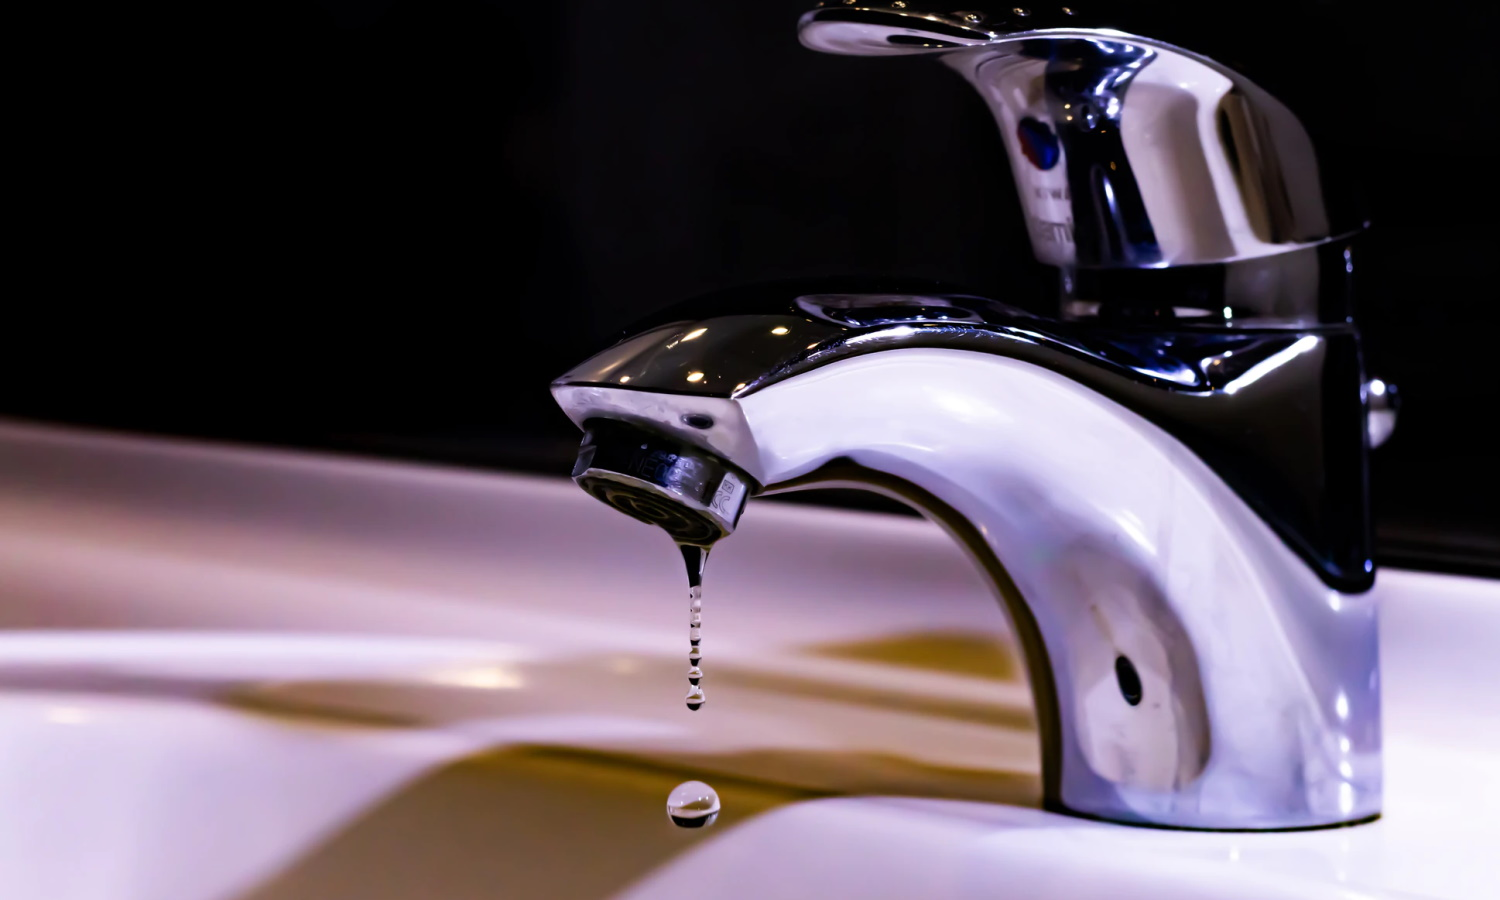 Man charged for hacking Kansas water utility with intent to harm public